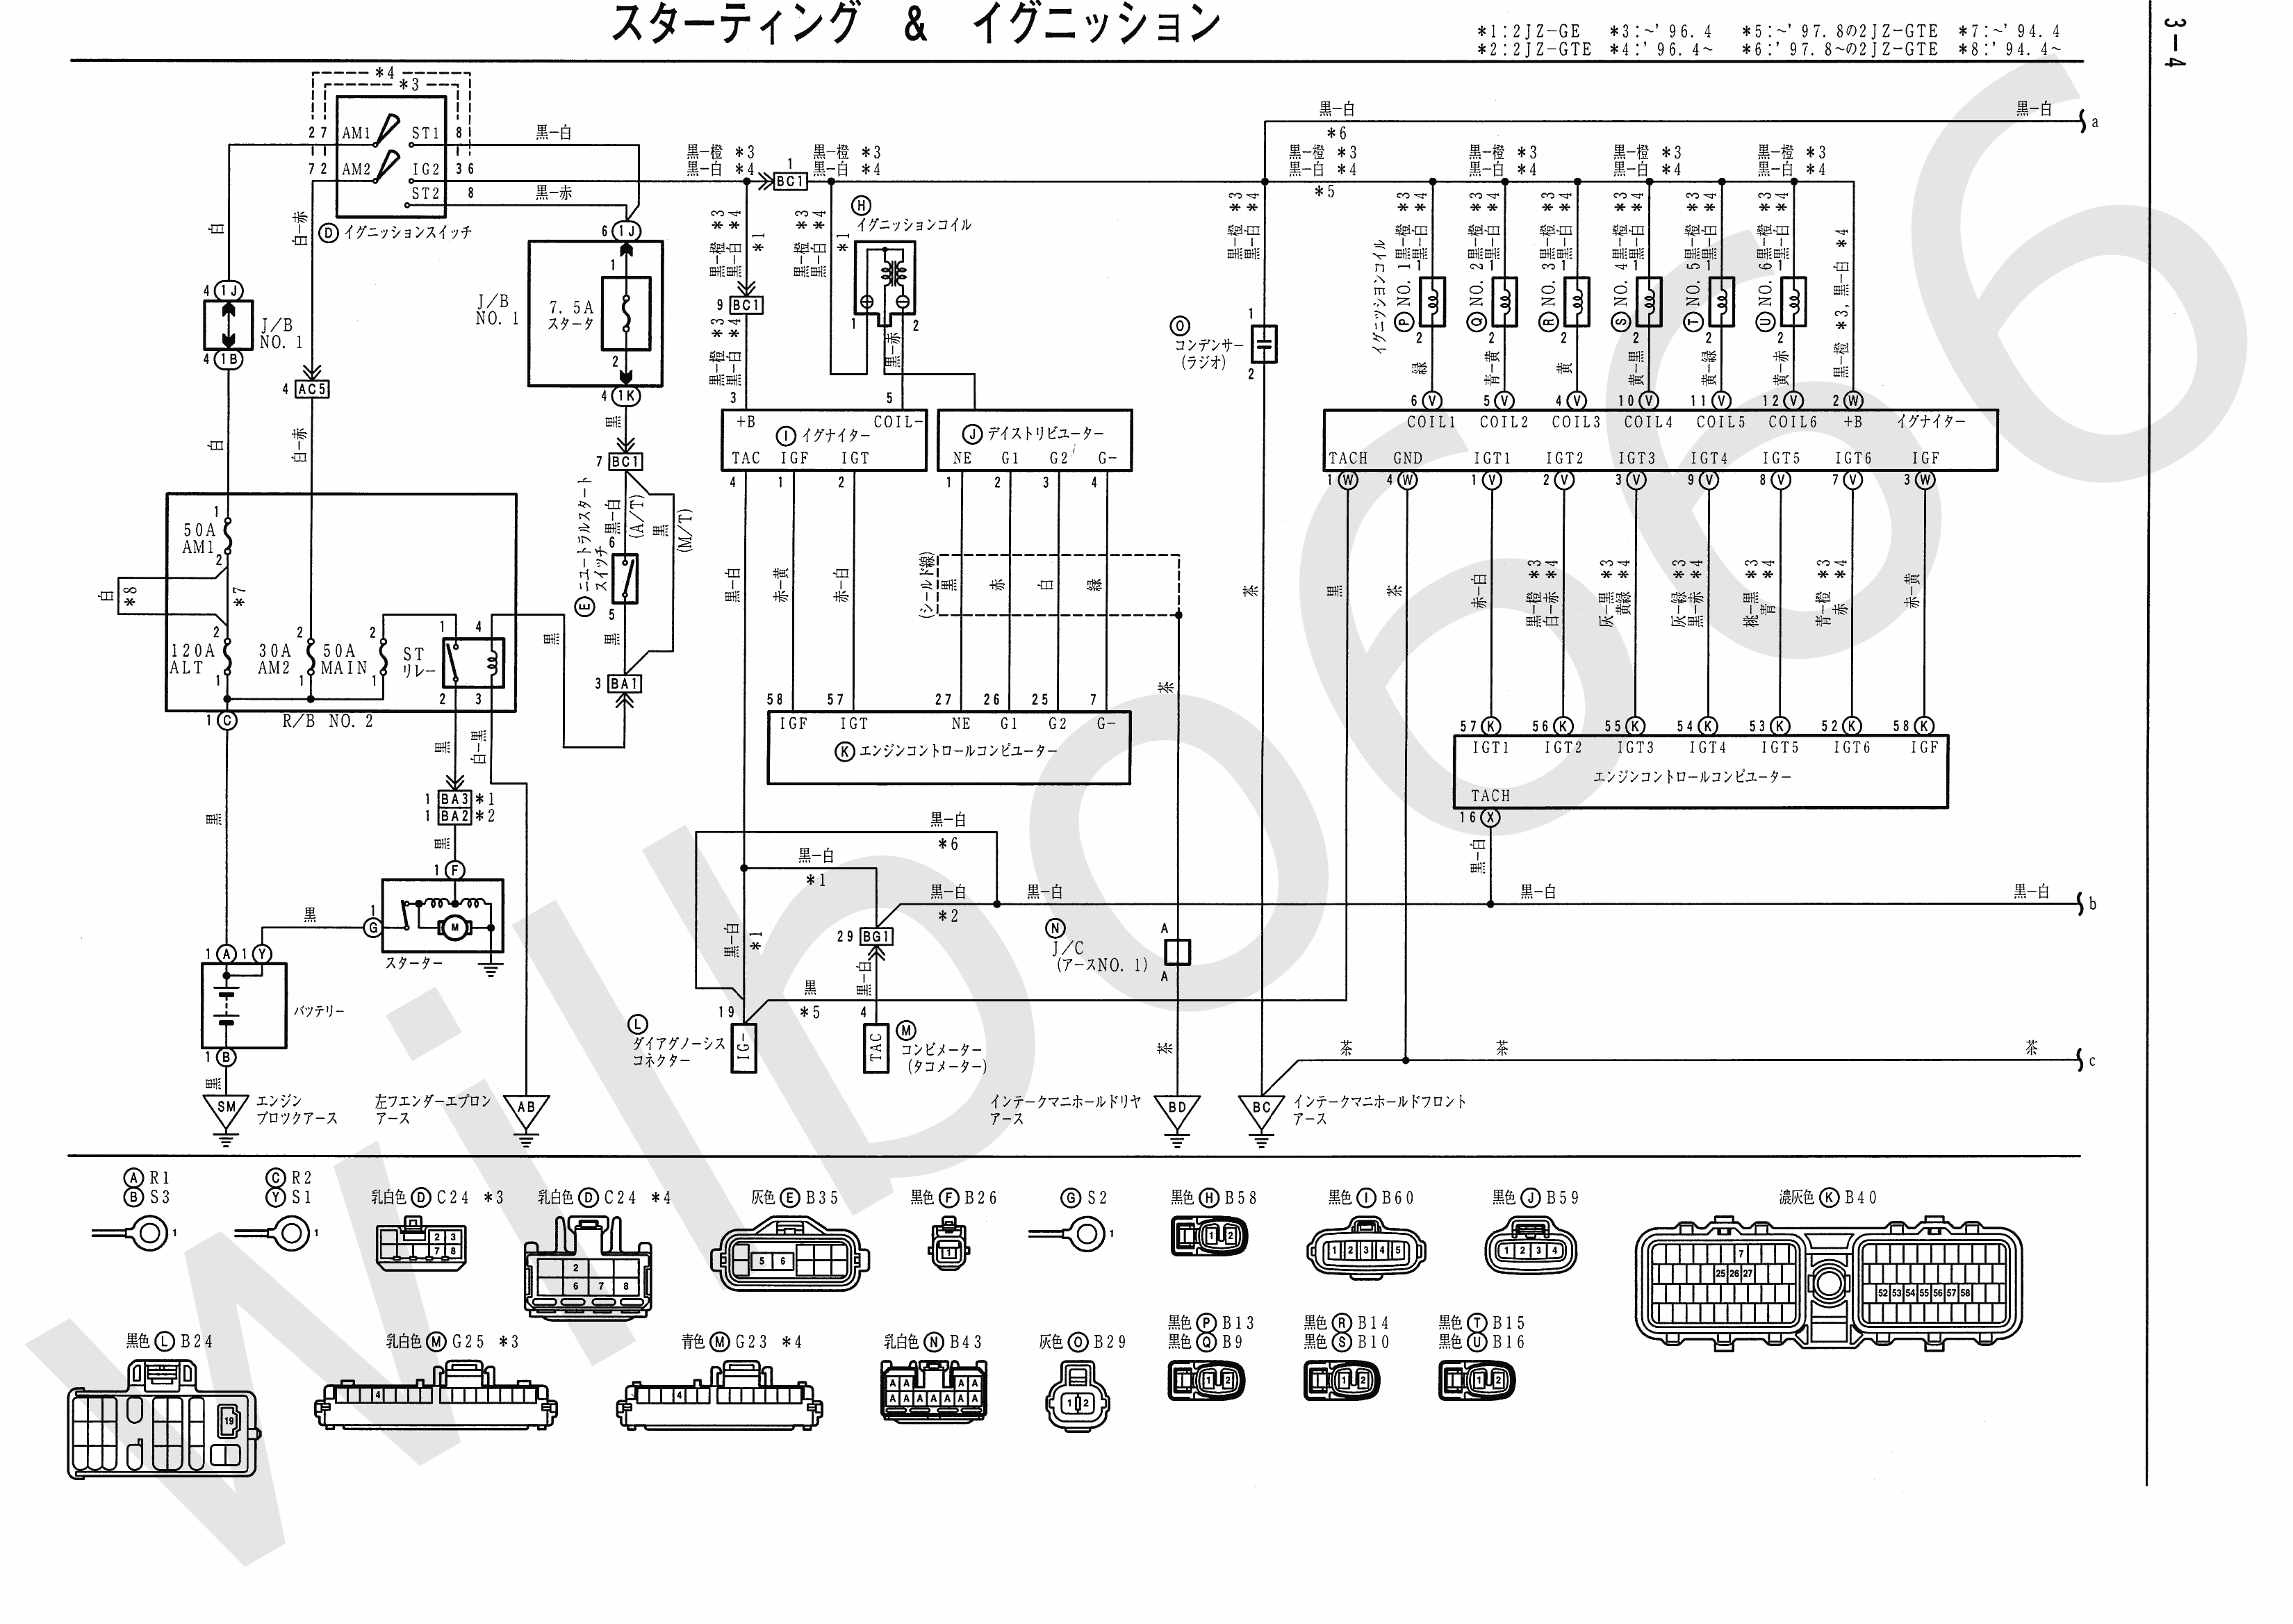 JZA80 Electrical Wiring Diagram 6742505 3 4 wilbo666 2jz gte vvti jza80 supra engine wiring 1jz vvti wiring diagram pdf at couponss.co